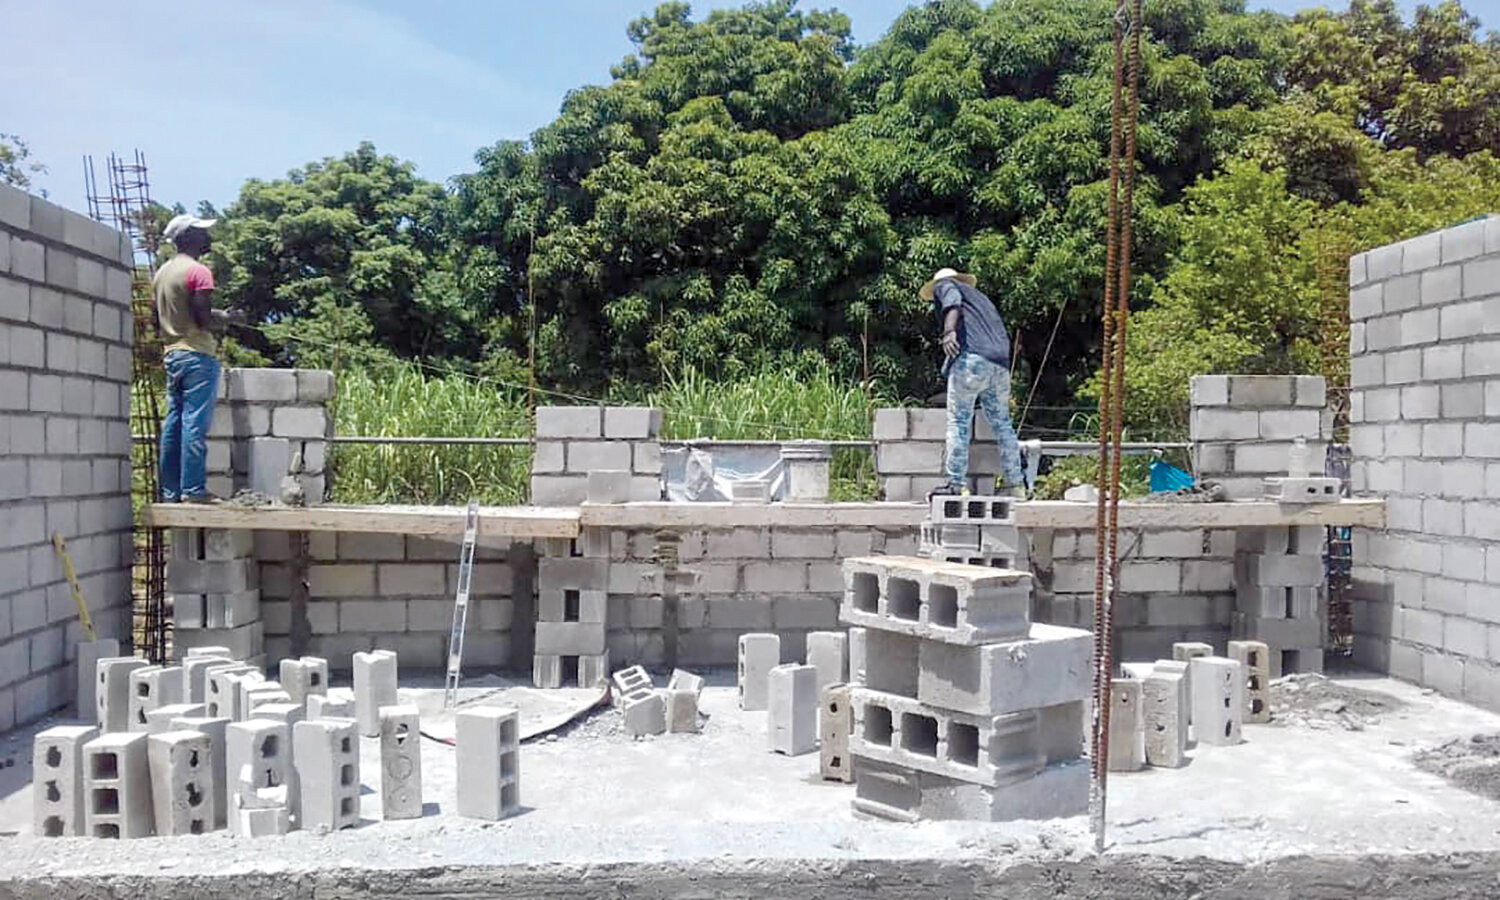 A new church is under construction on our campus in Flon, Haiti. This is built 100% by Haitians—providing jobs to support their families.